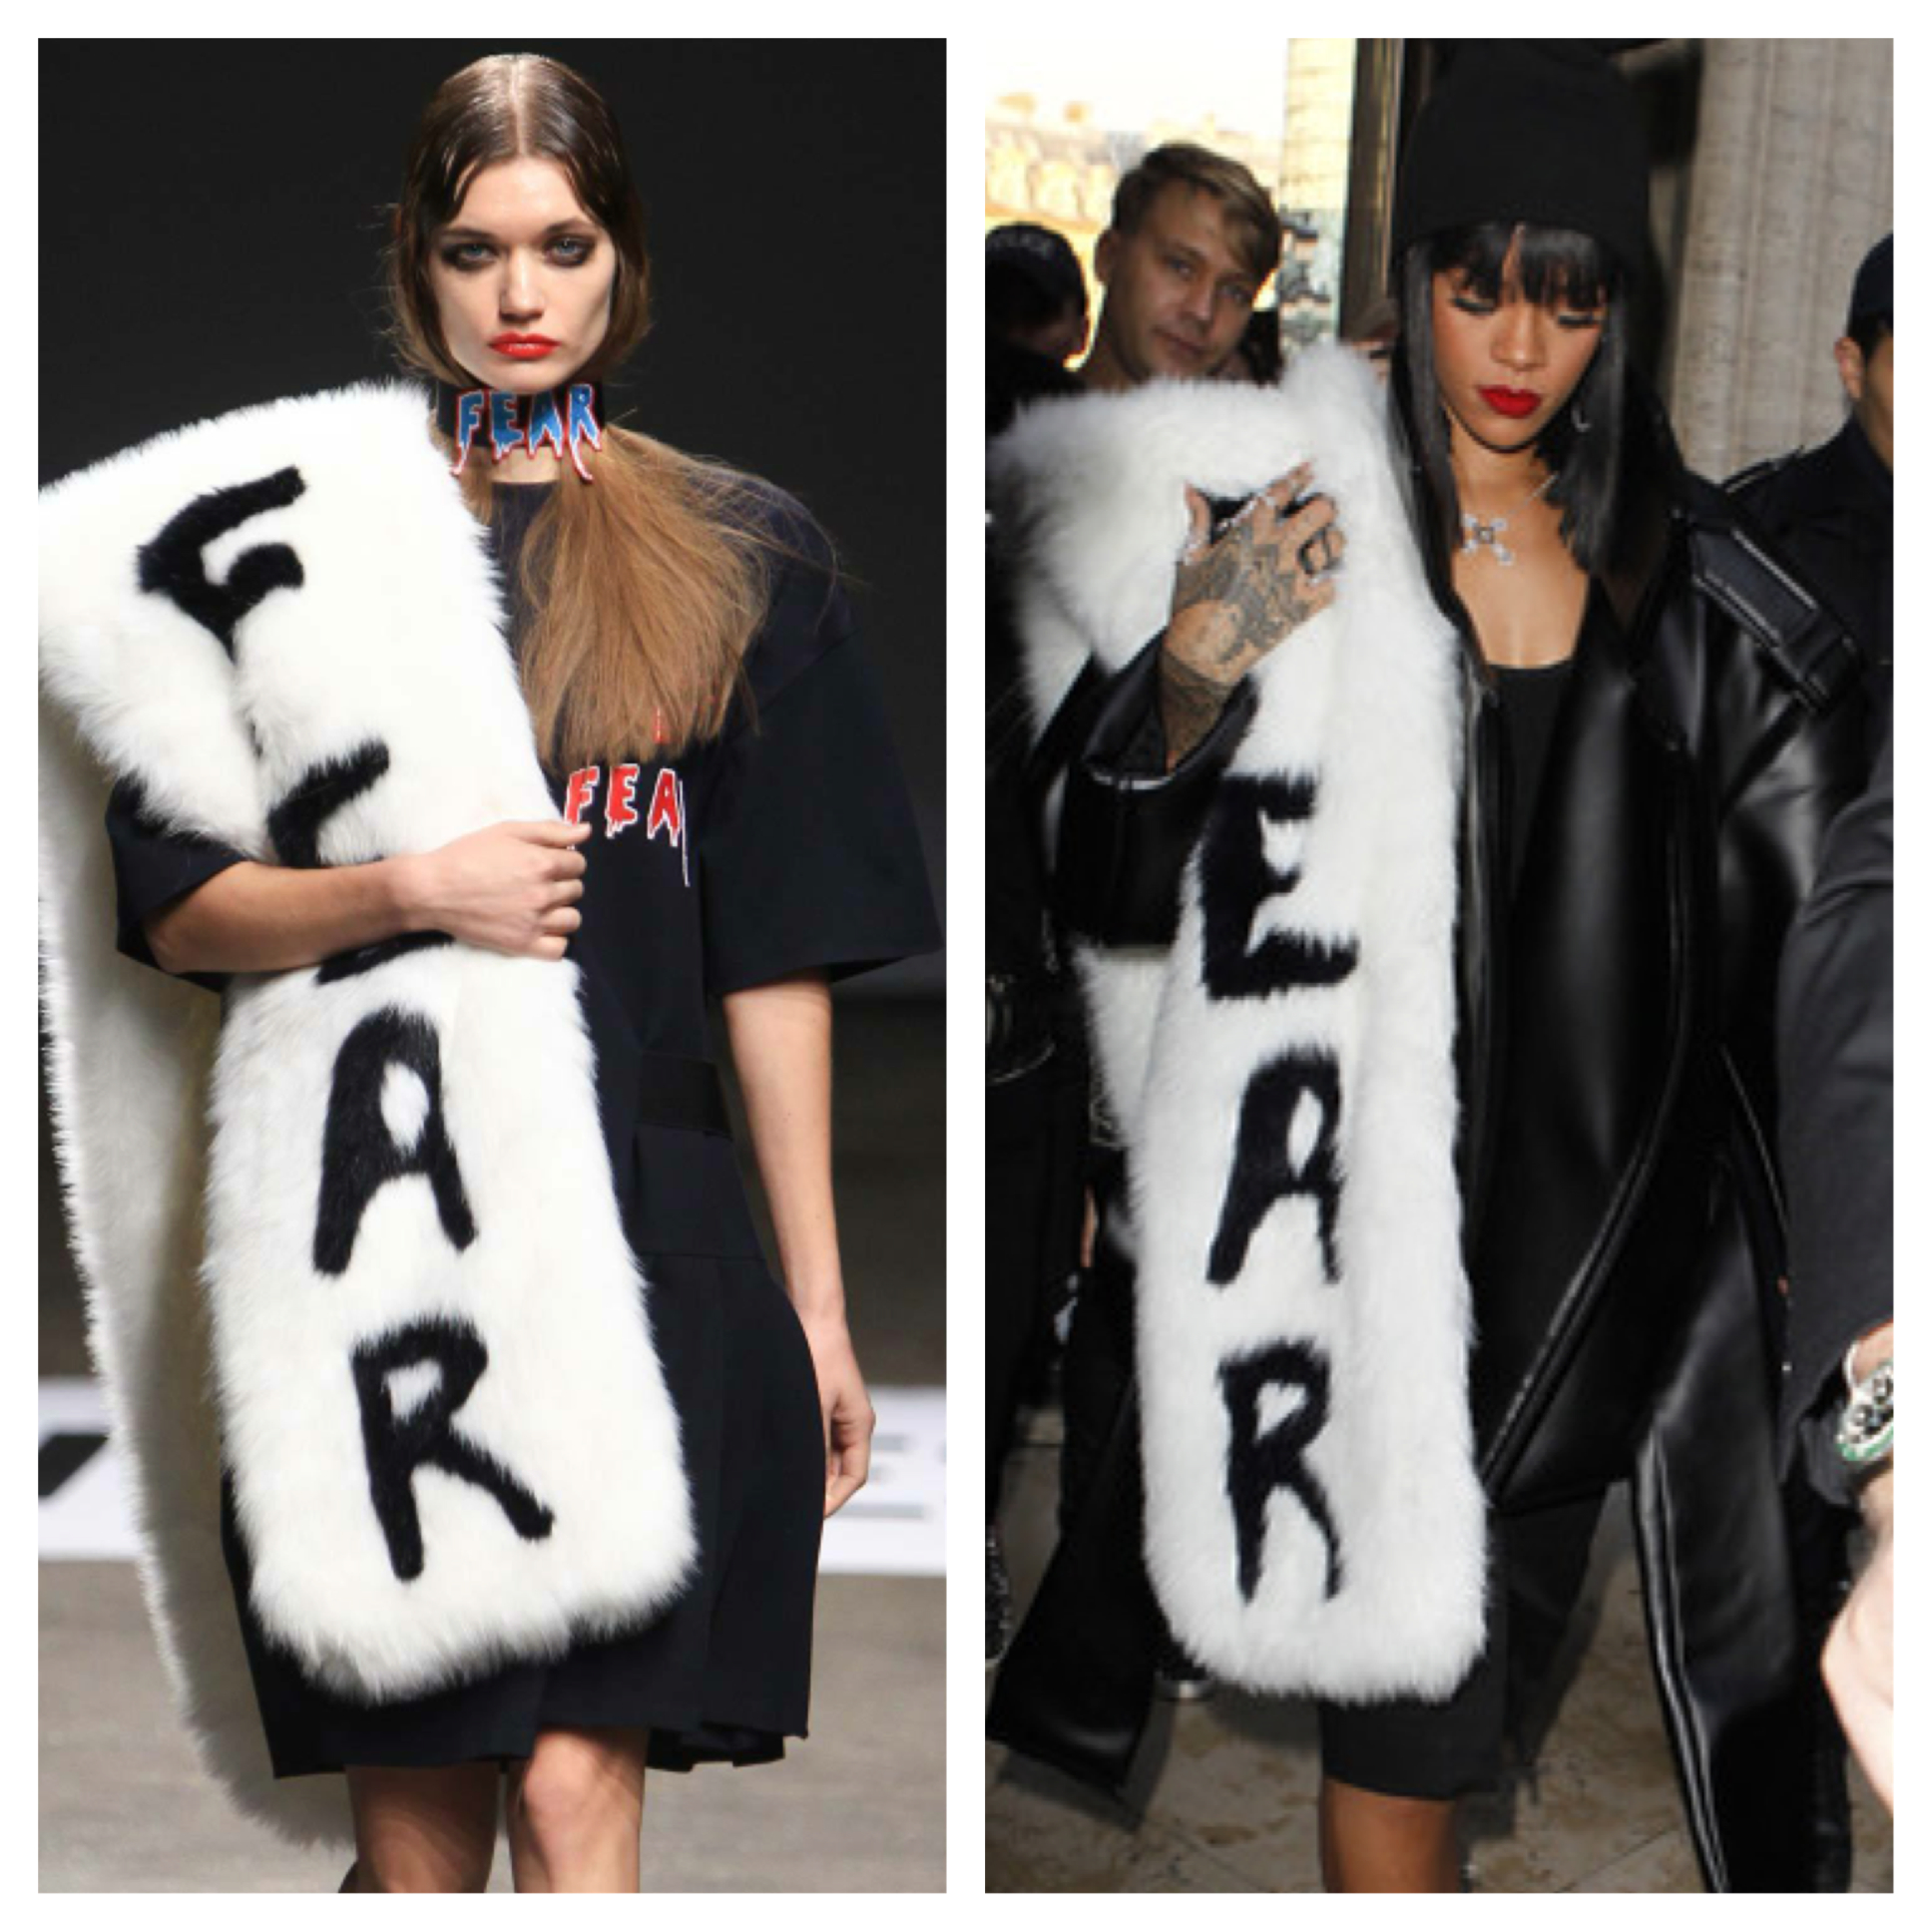 Rihanna rocked the VFiles Fall 2014 - Winter 2015 oversized fur scarf during Paris Fashion Week